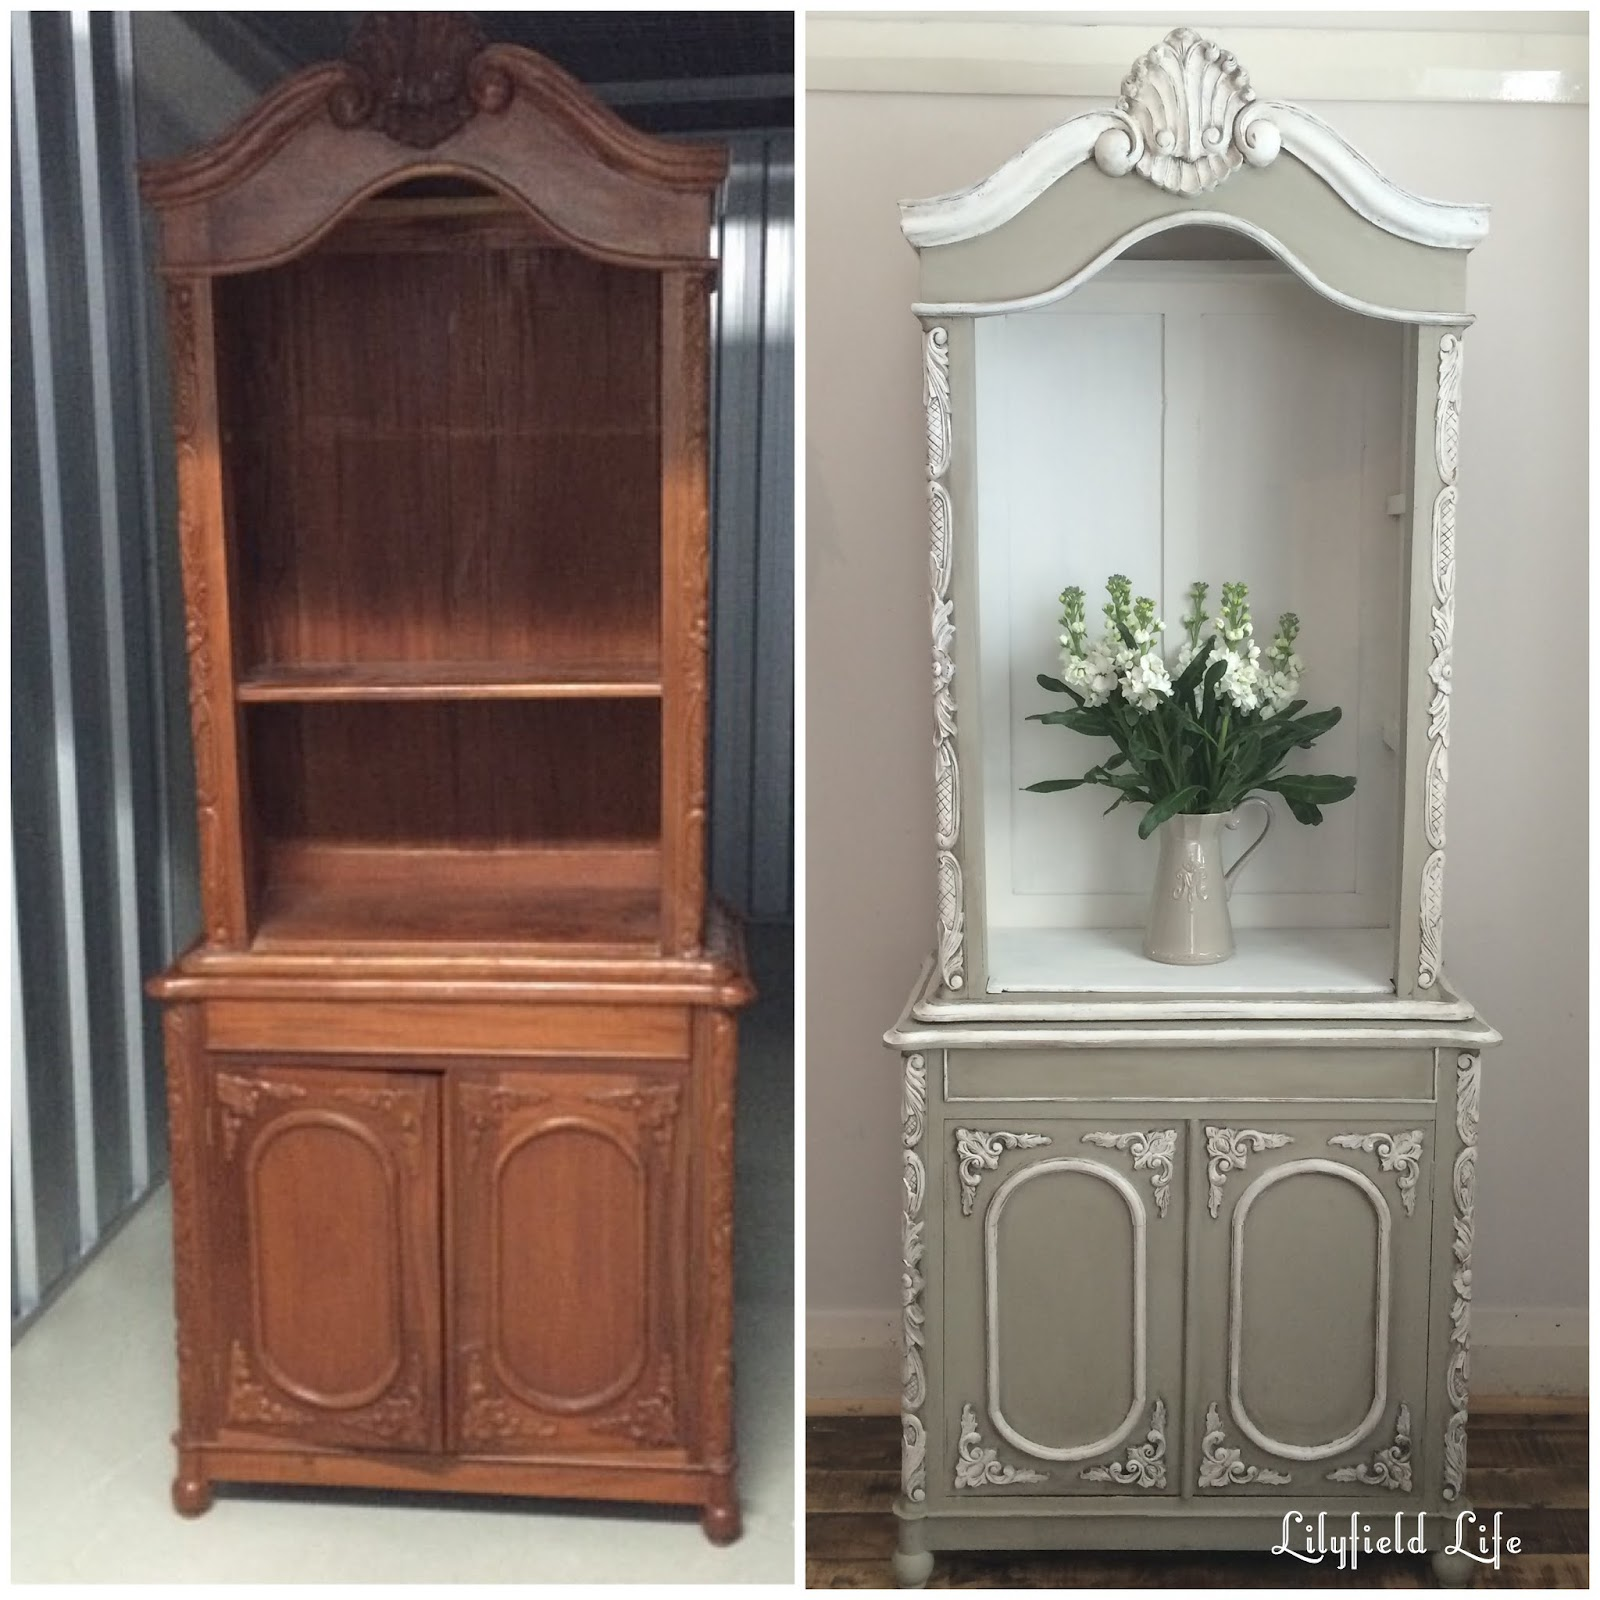 Lilyfield Life: Before And After: Hand Painted French